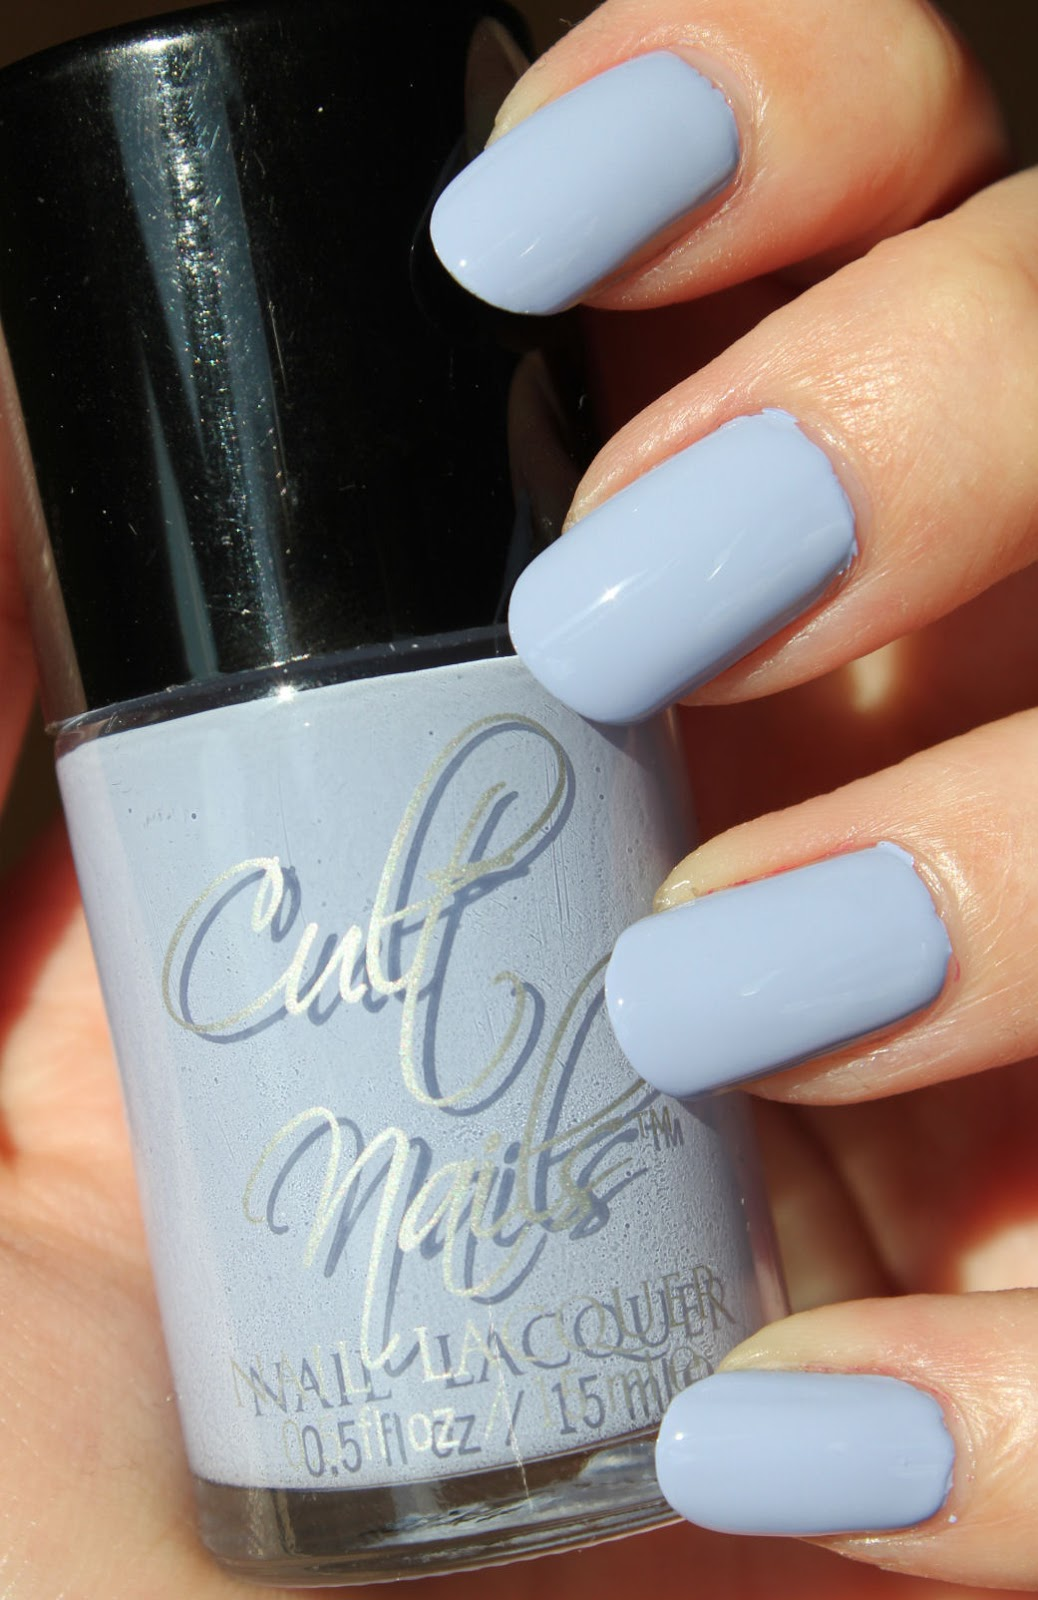 http://lacquediction.blogspot.de/2014/10/cult-nails-casual-elegance.html